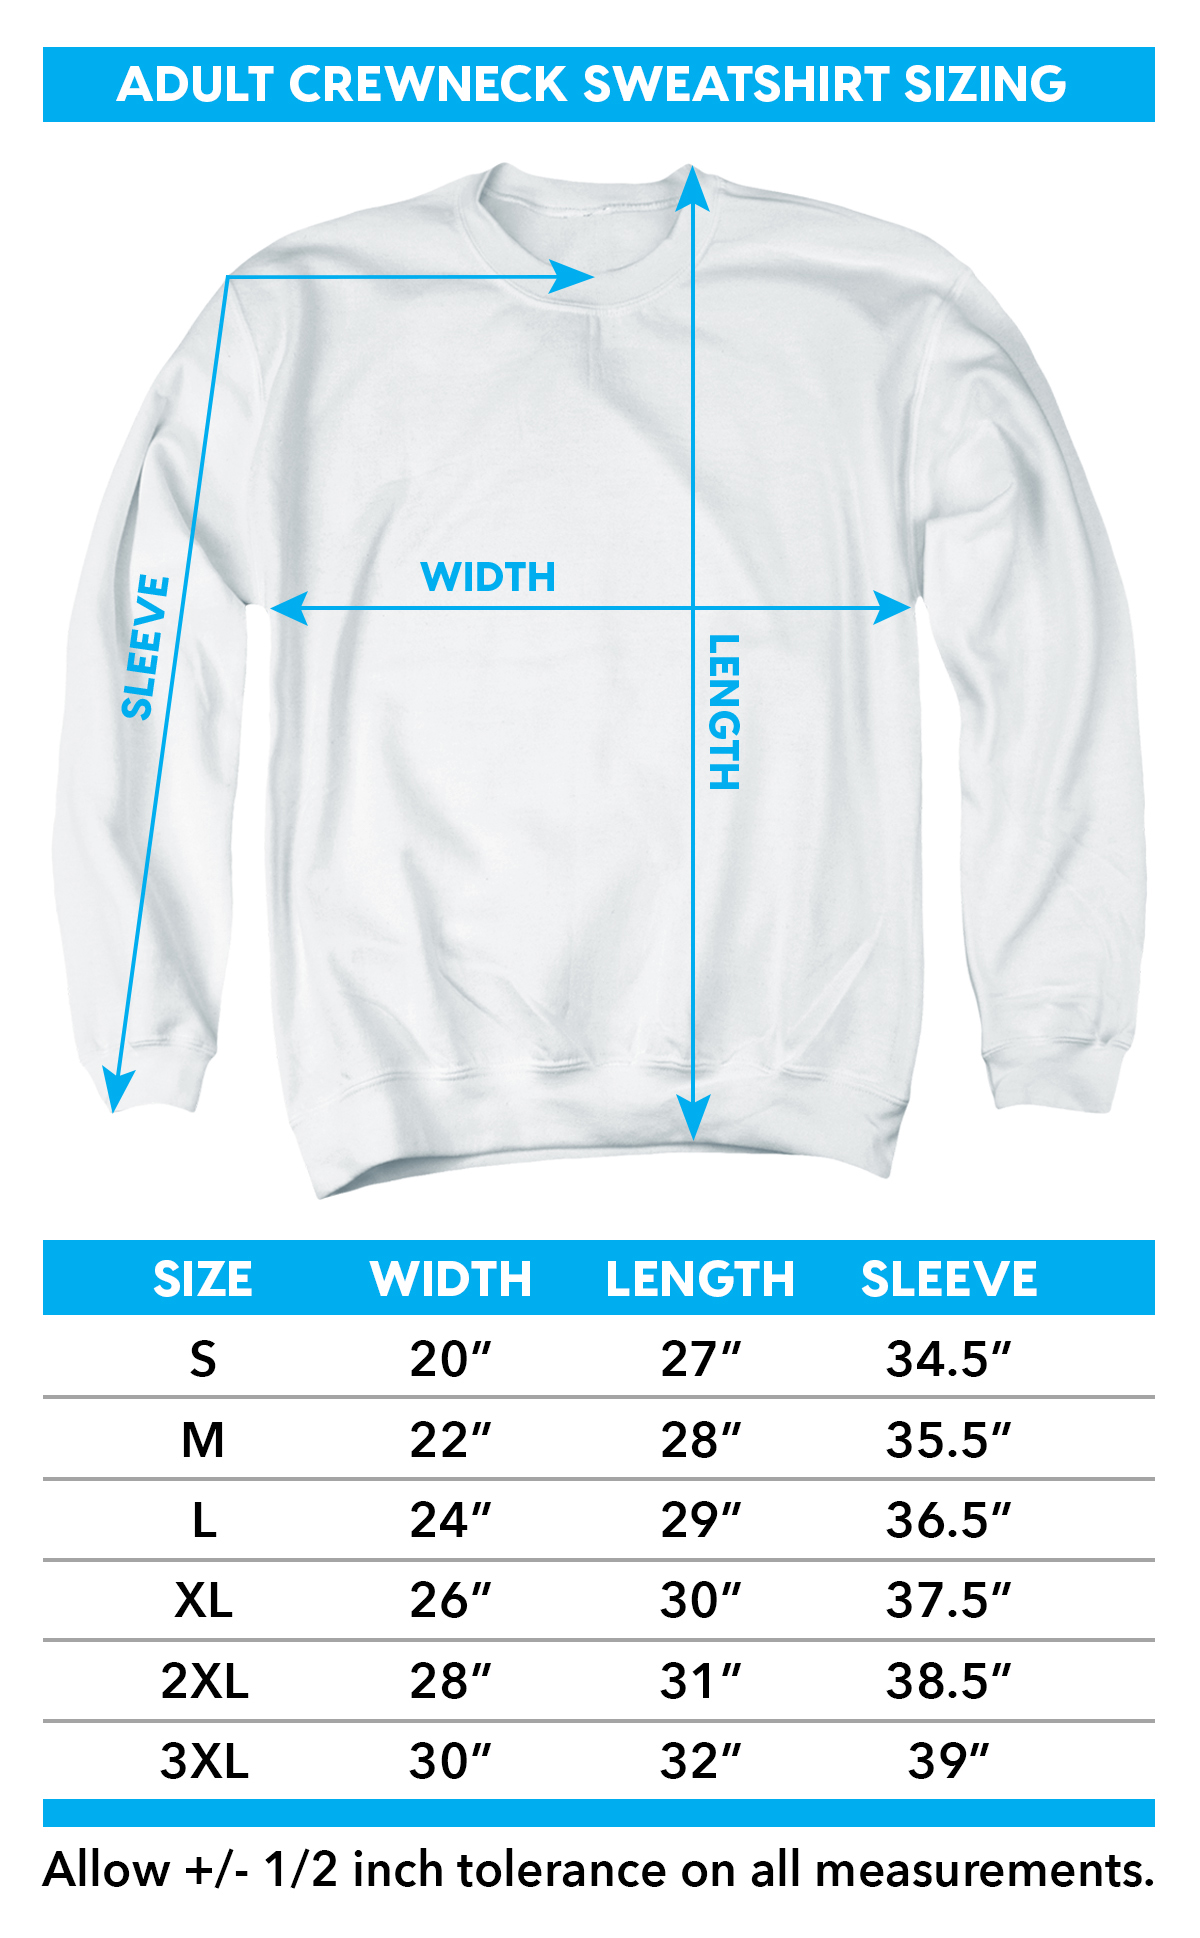 Sizing chart for the Predator On the Prowl crewneck sweatshirt